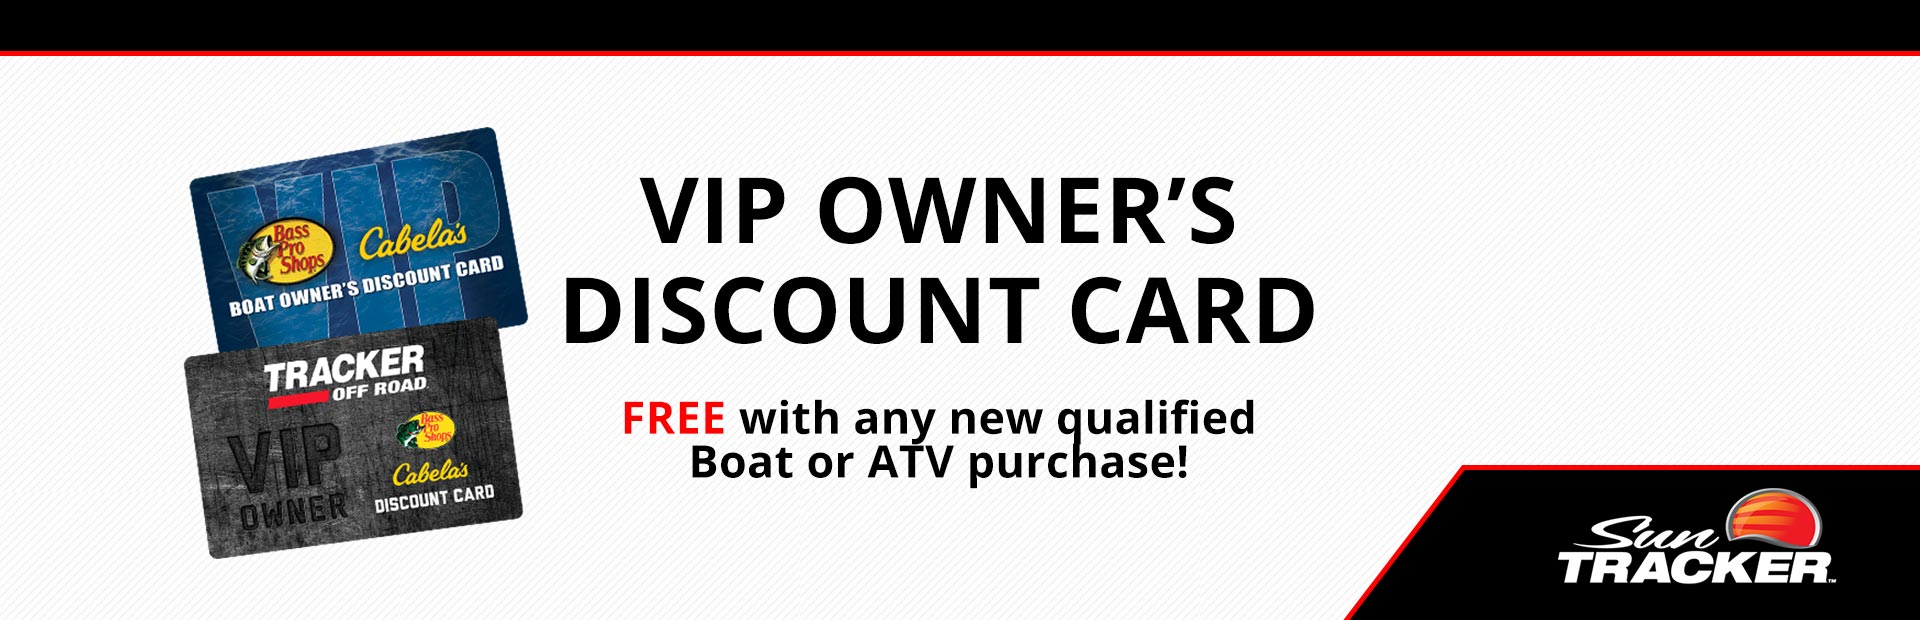 Free Owner's Discount Card w/ Boat Purchase